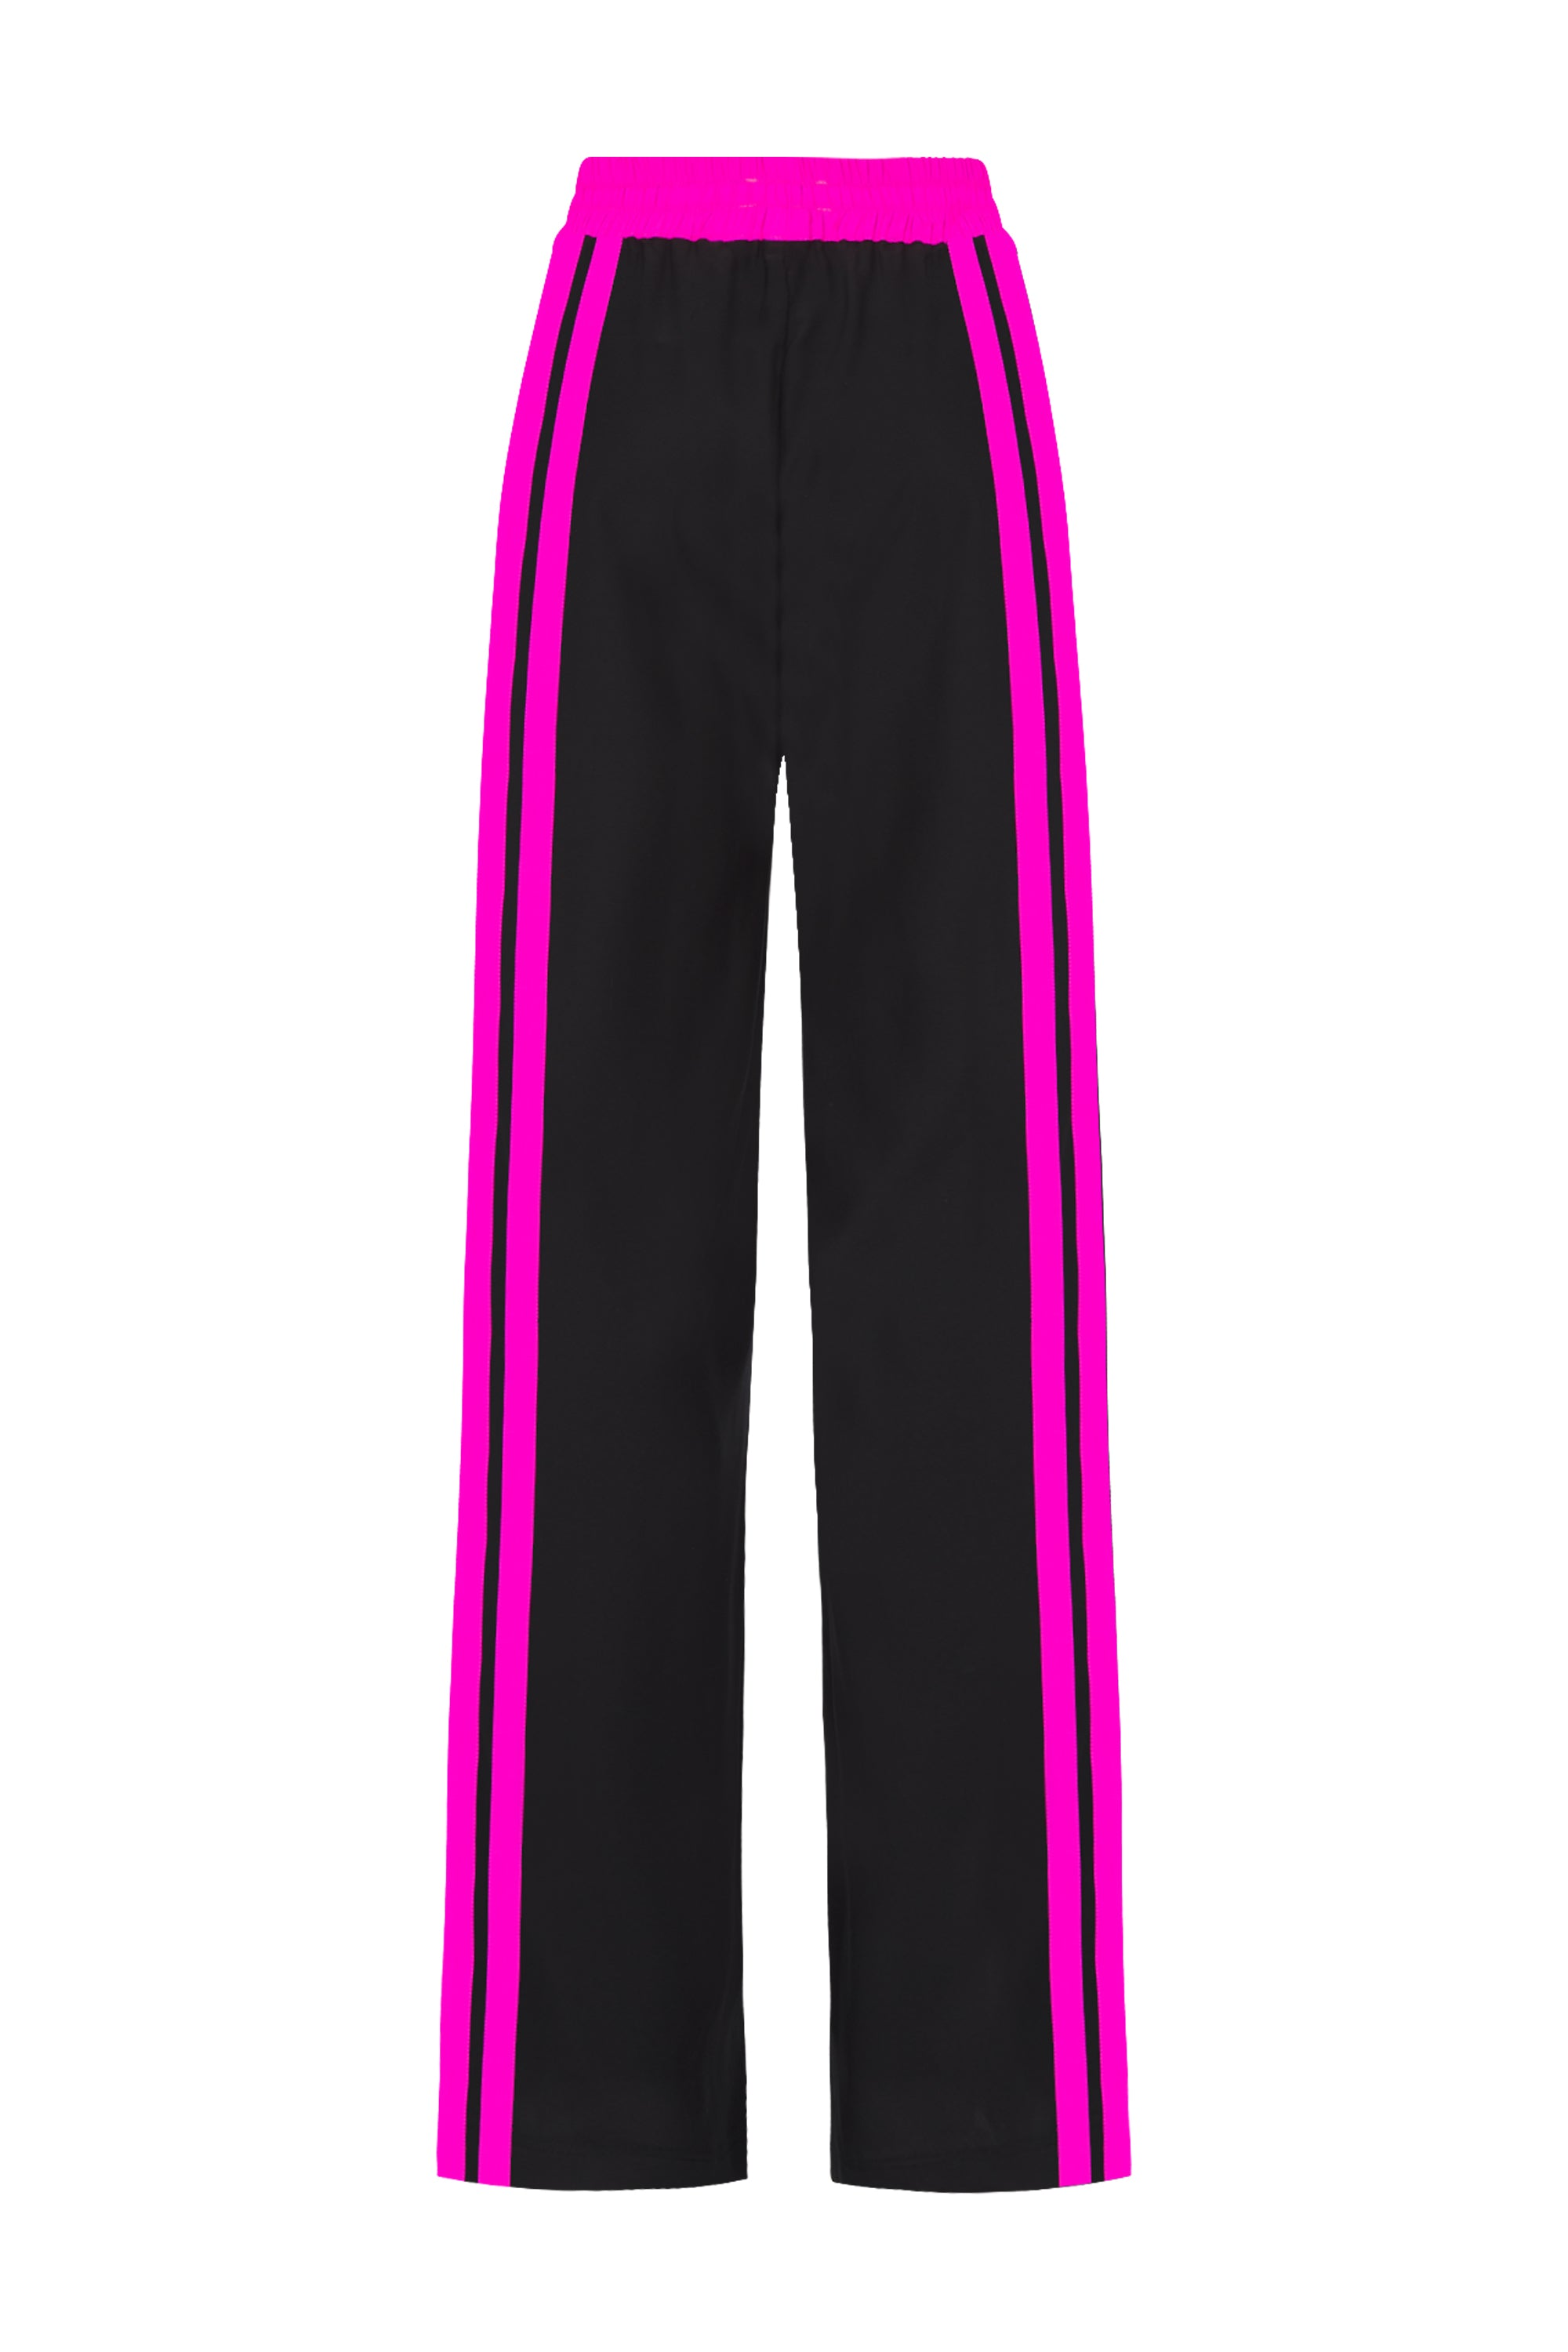 The Classic Jogger - Black & Shocking Pink Silk - SERENA BUTE